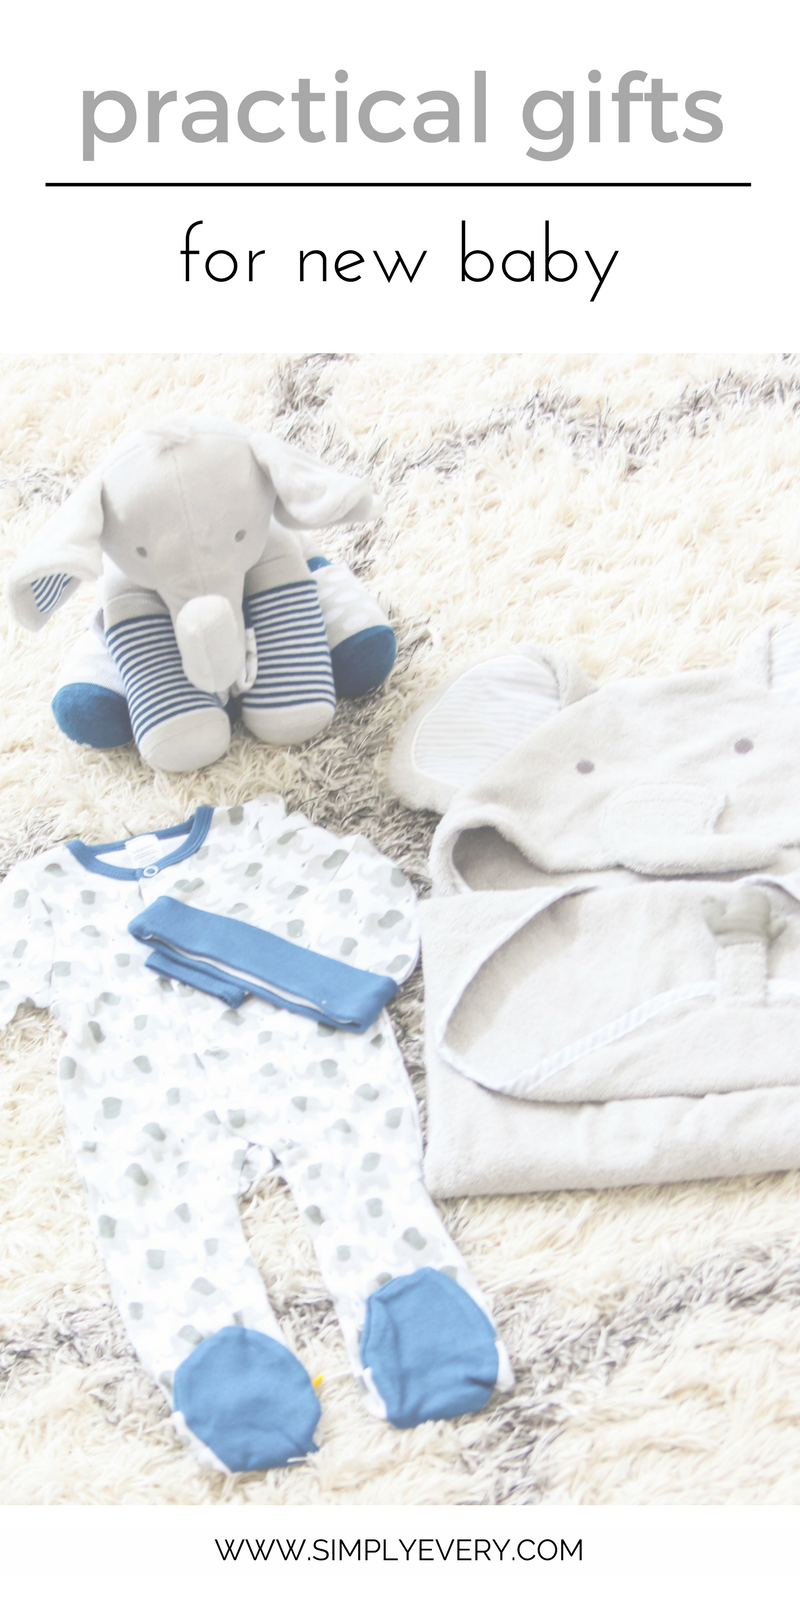 practical gifts for new baby